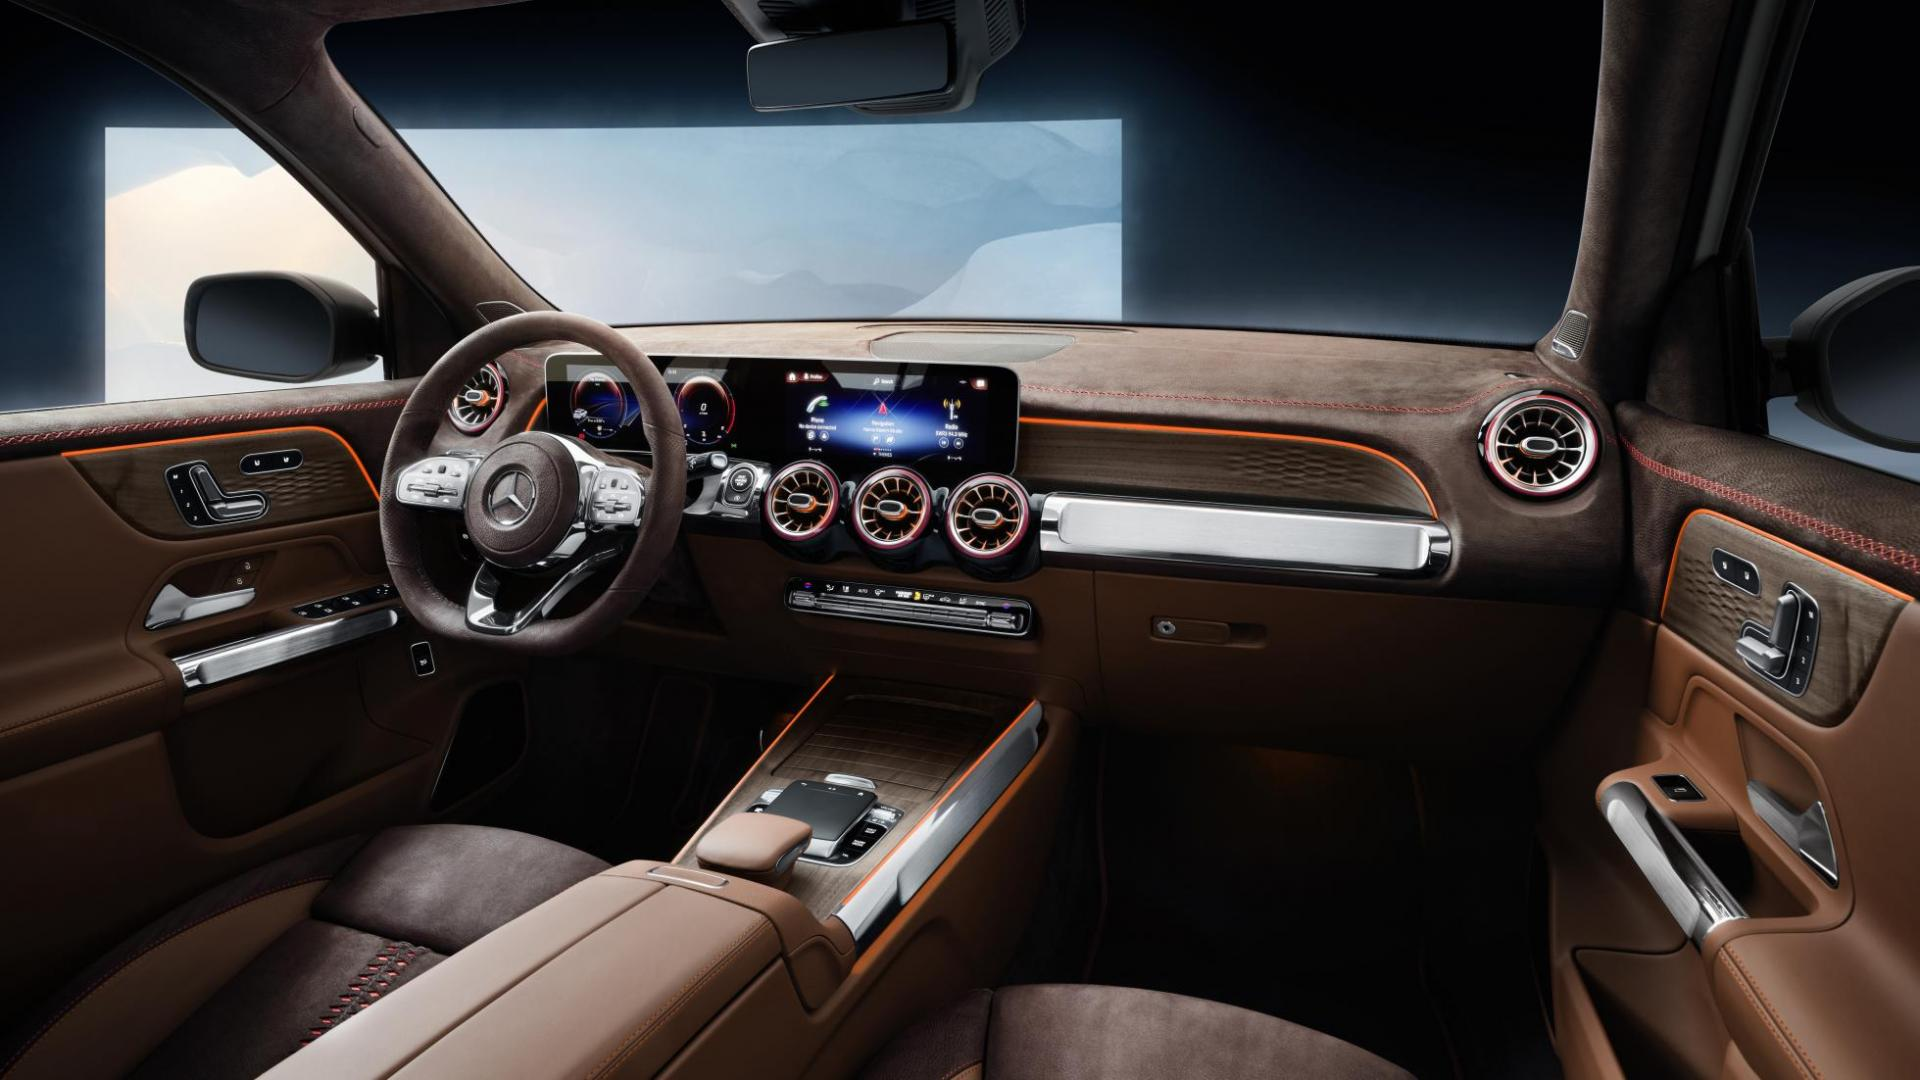 Mercedes GLB Concept 2019 interieur dashboard